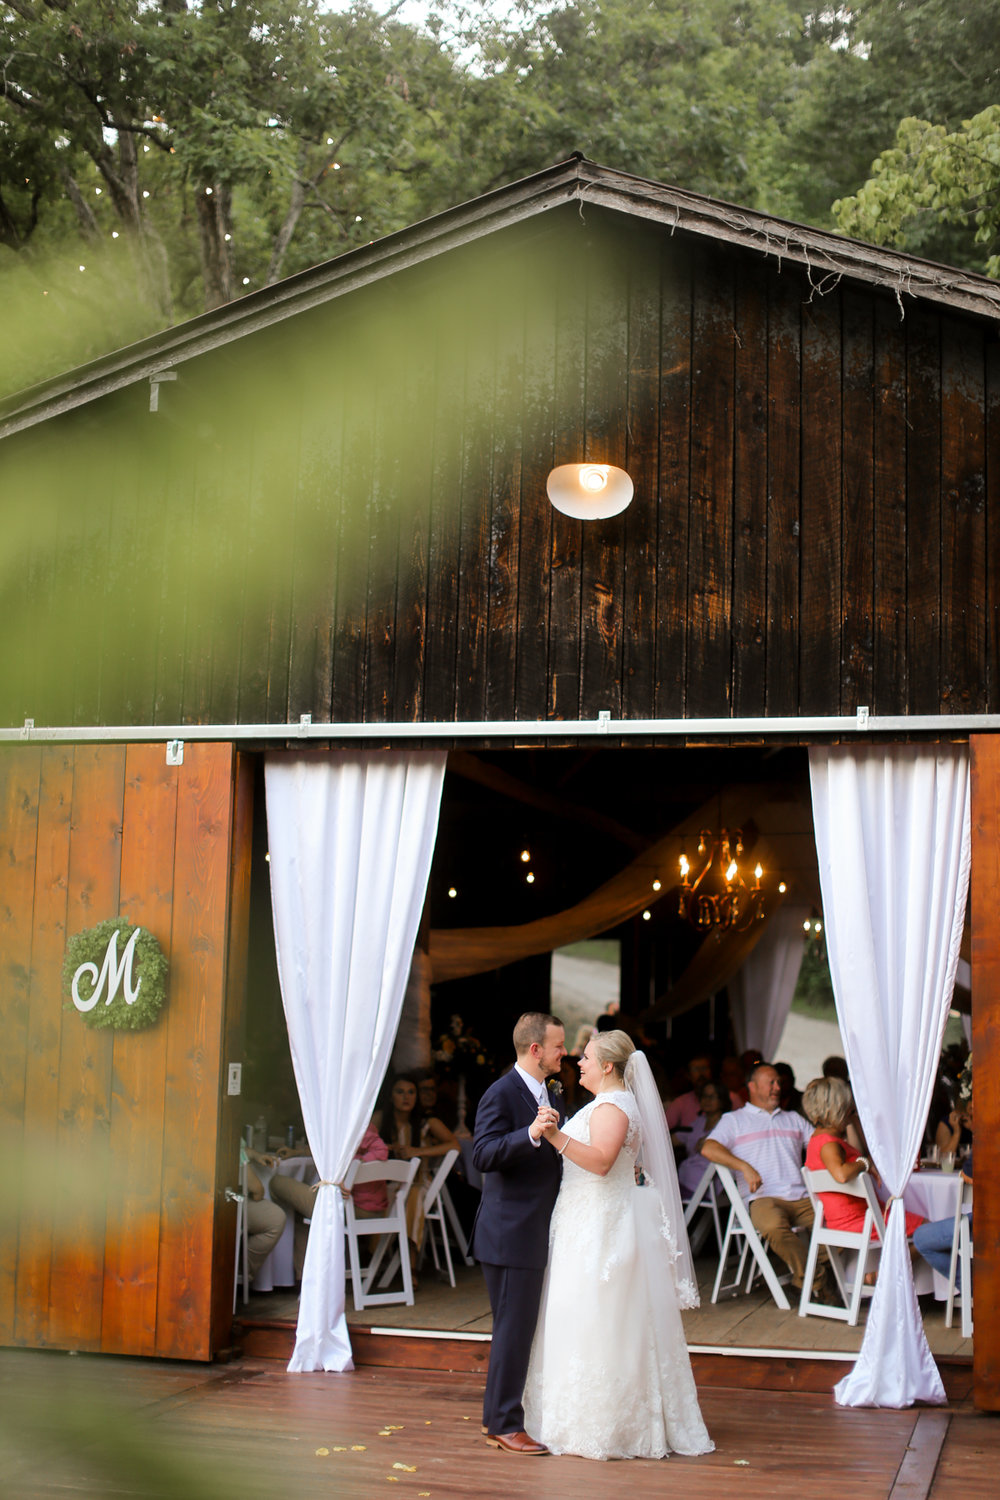 Barn-At-The-Gorge-Red-River-Kentucky-Wedding-44.jpg